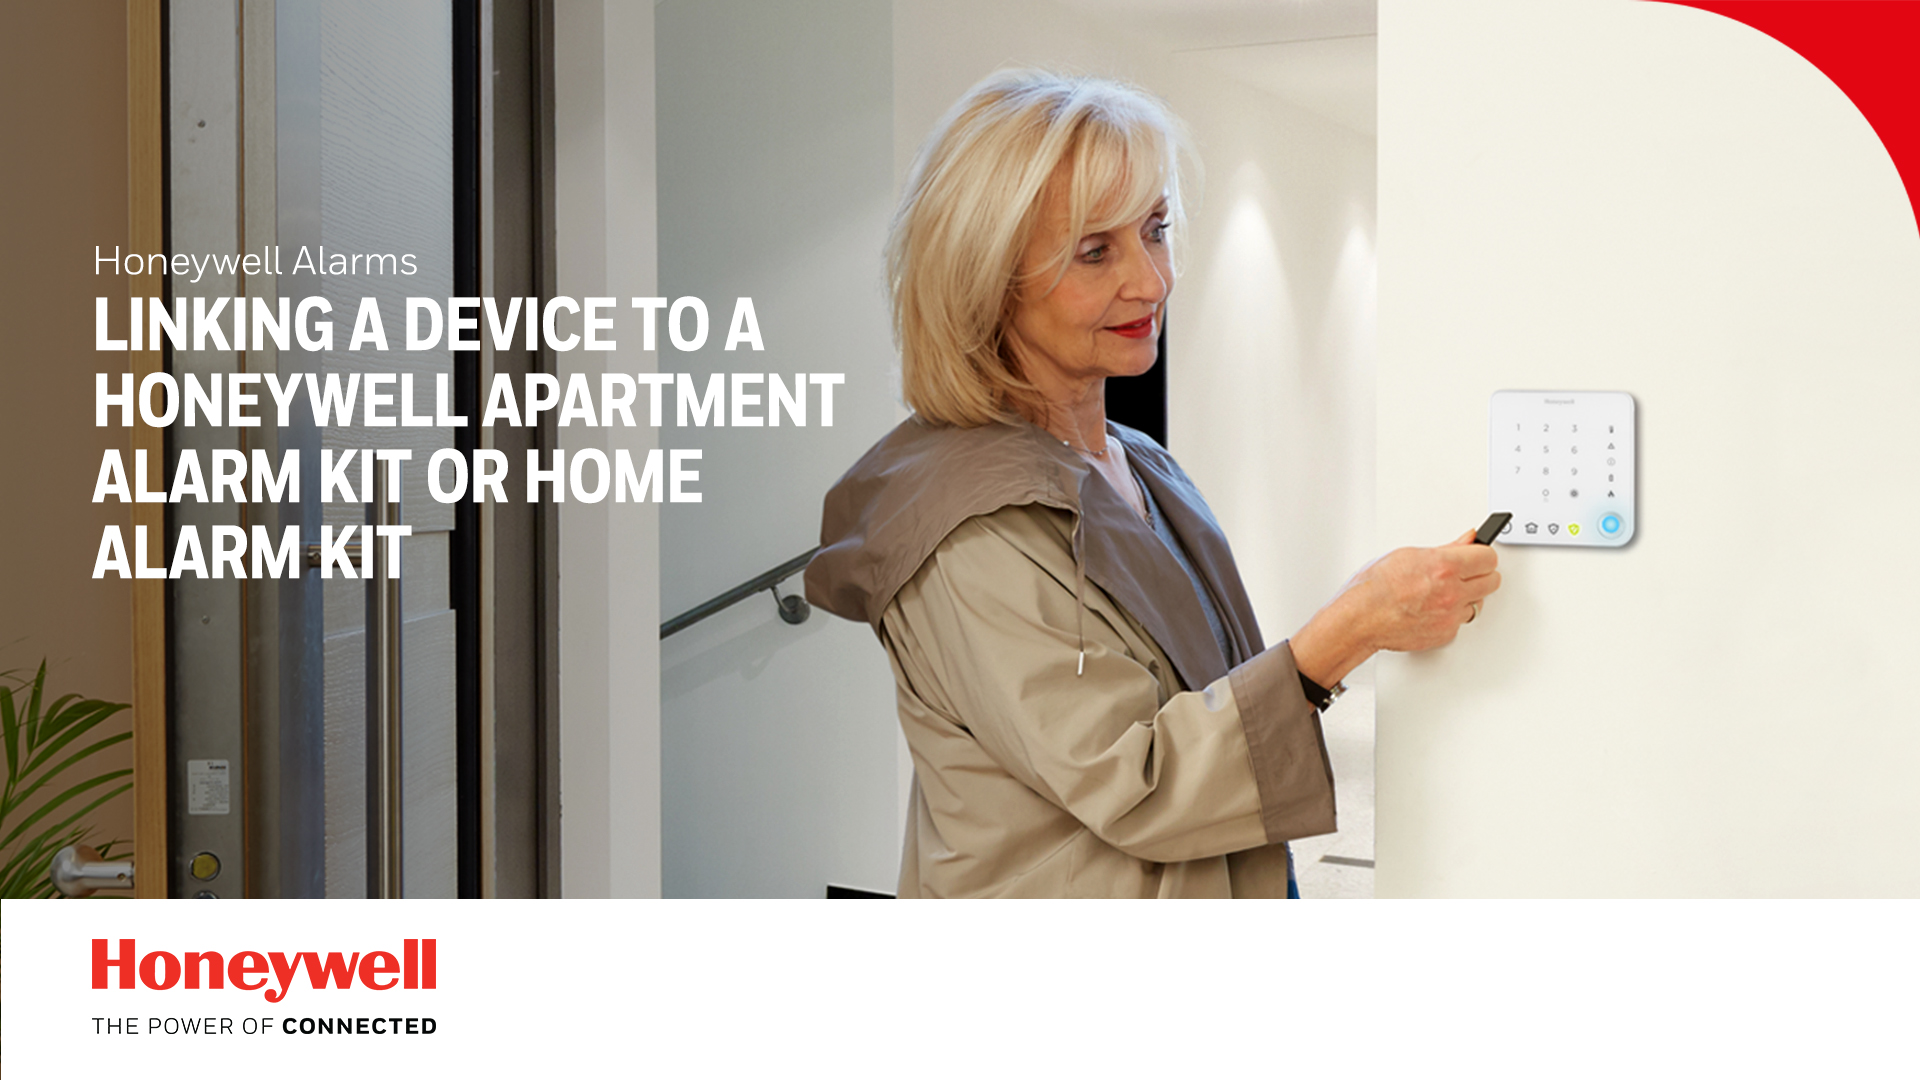 Enlace de un dispositivo a los kits de Honeywell Apartment Alarm Kit o Home Alarm Kit